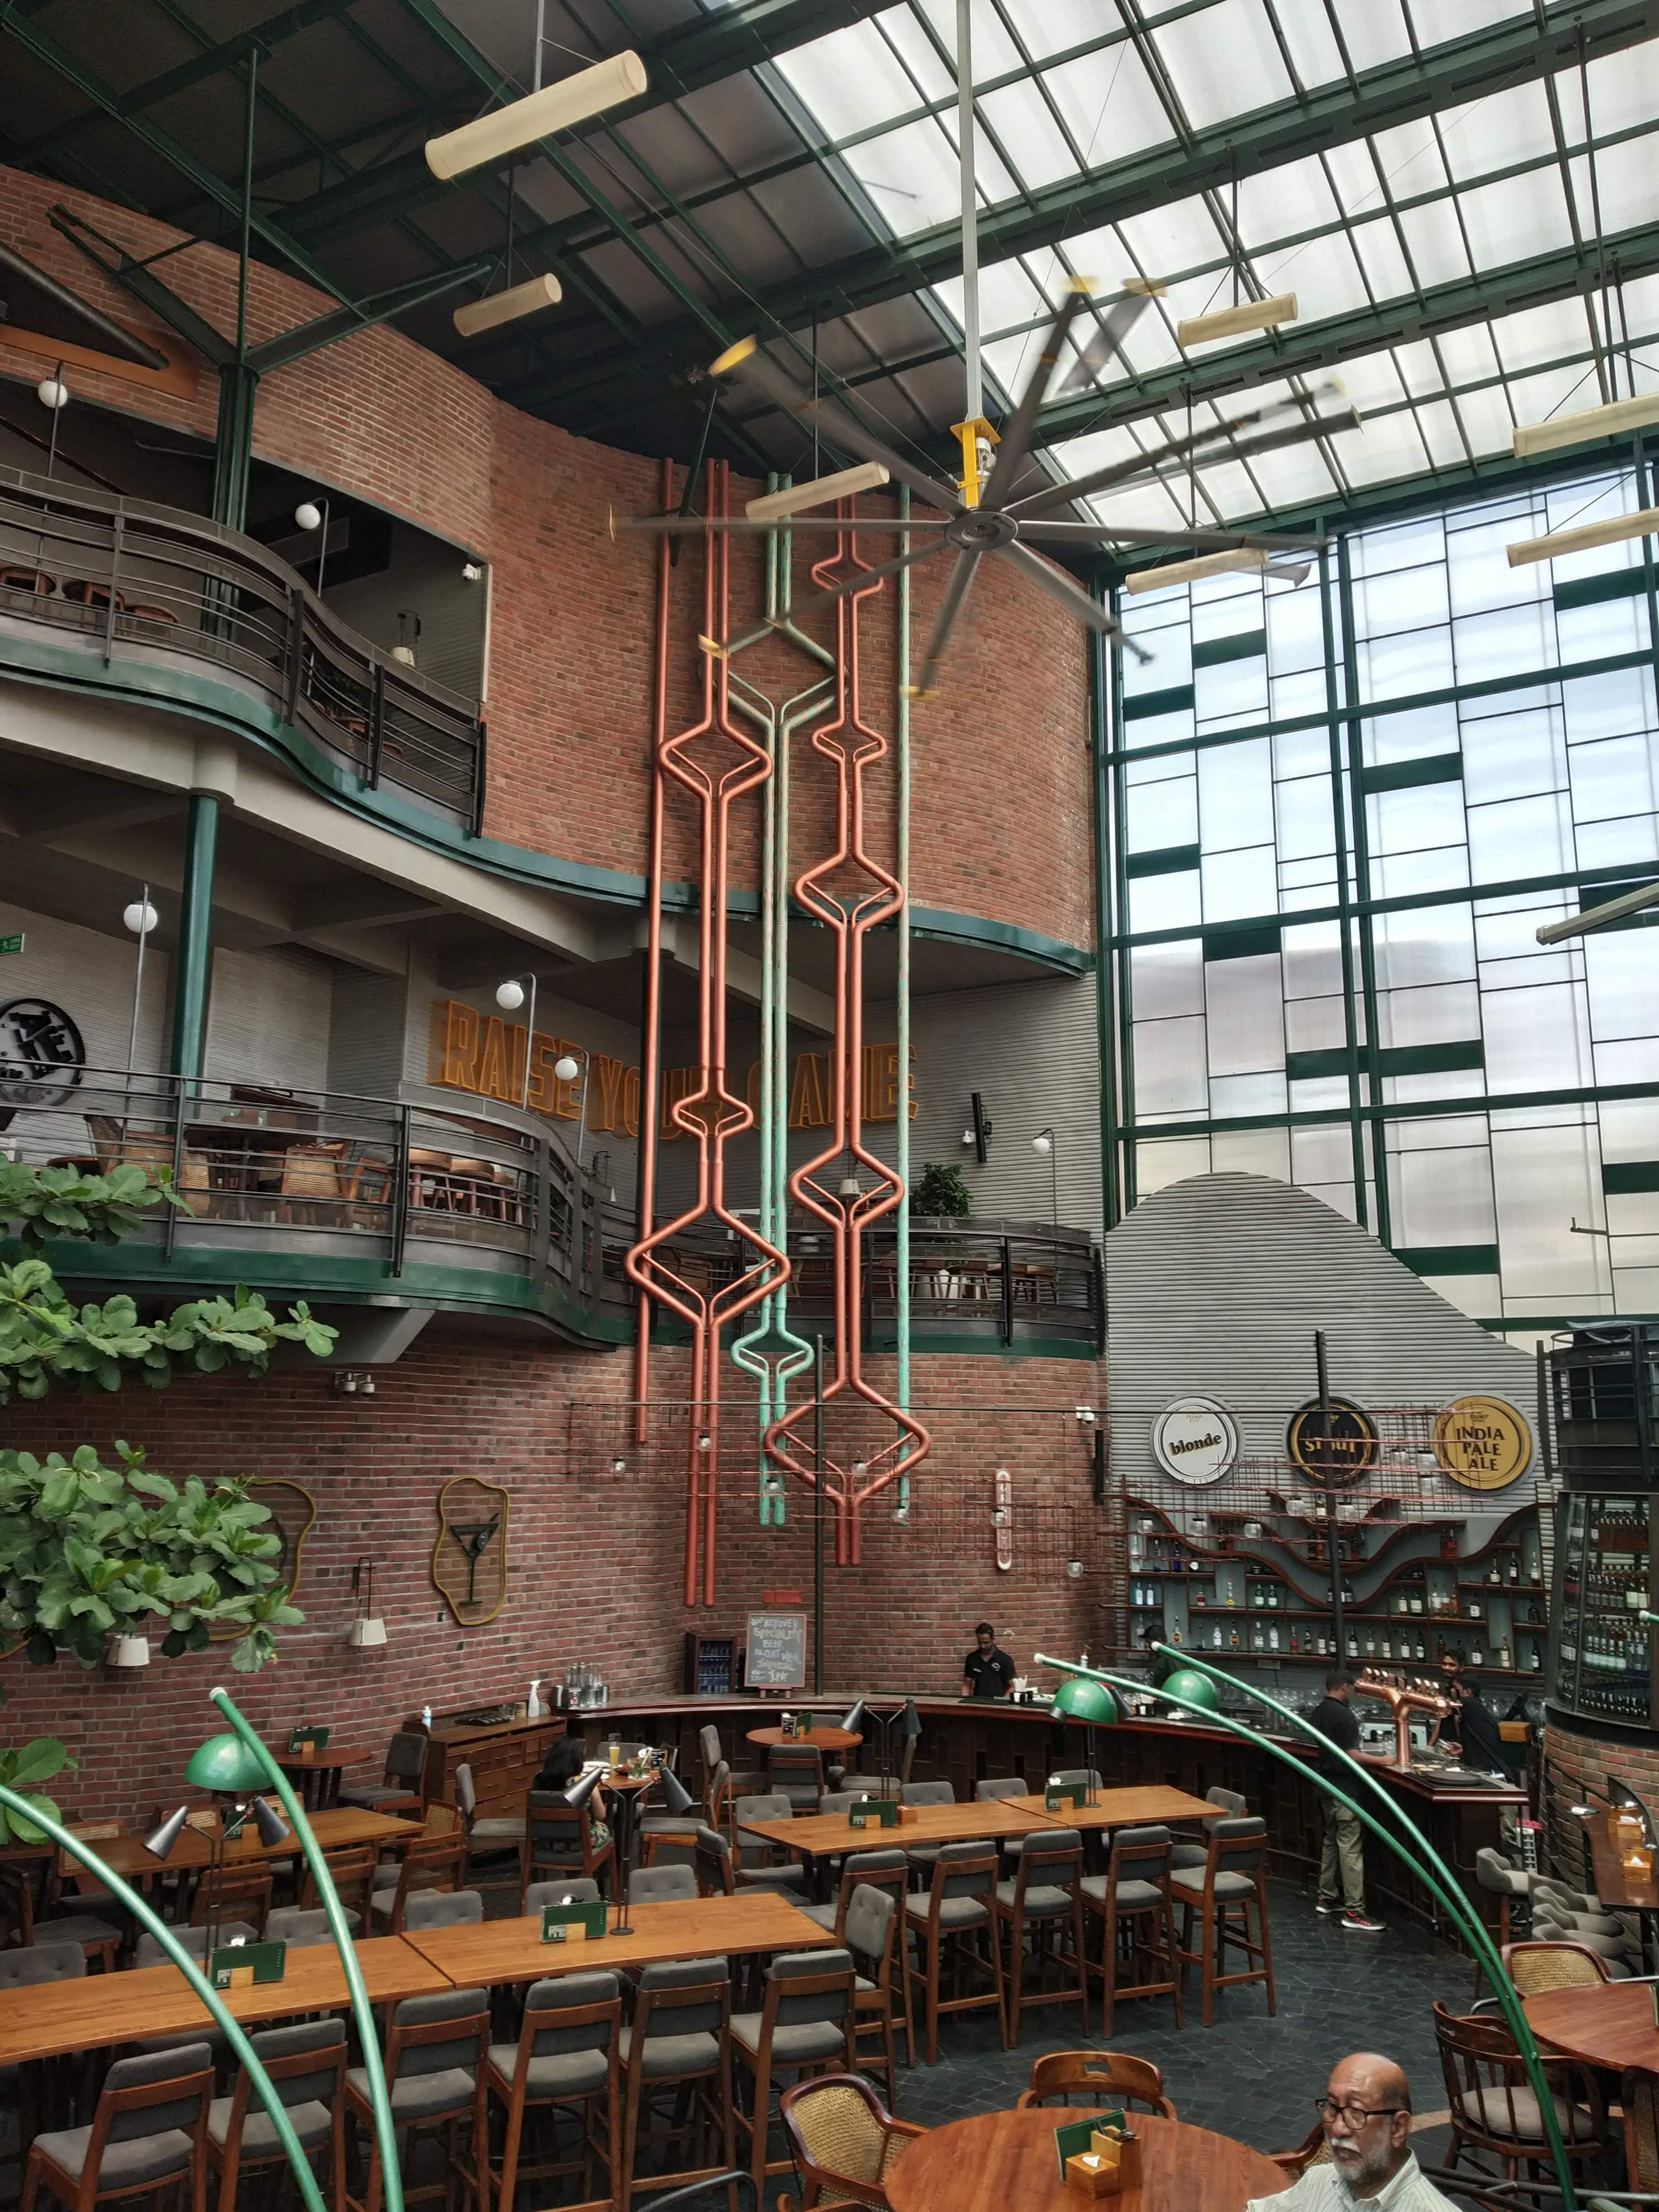 Industry,Factory,Building,Urban area,Iron,Architecture,Metal,Pipe,Machine,Steel